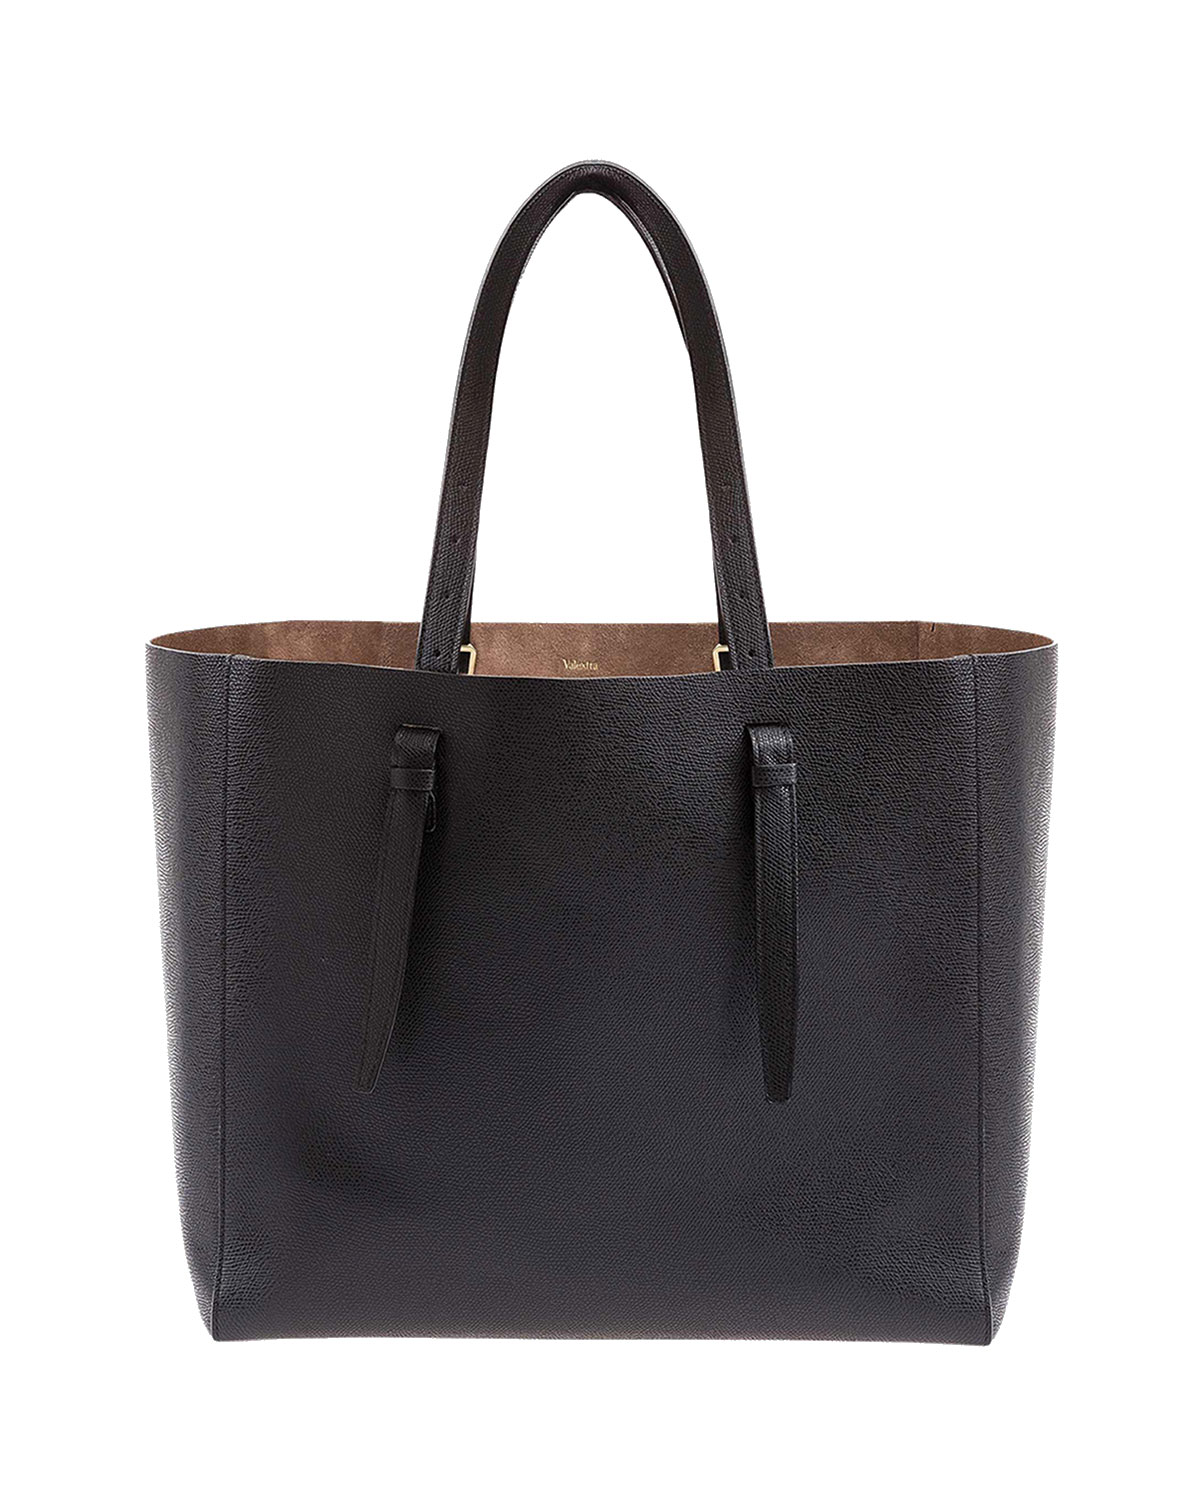 Soft Leather Tote Bag by Valextra